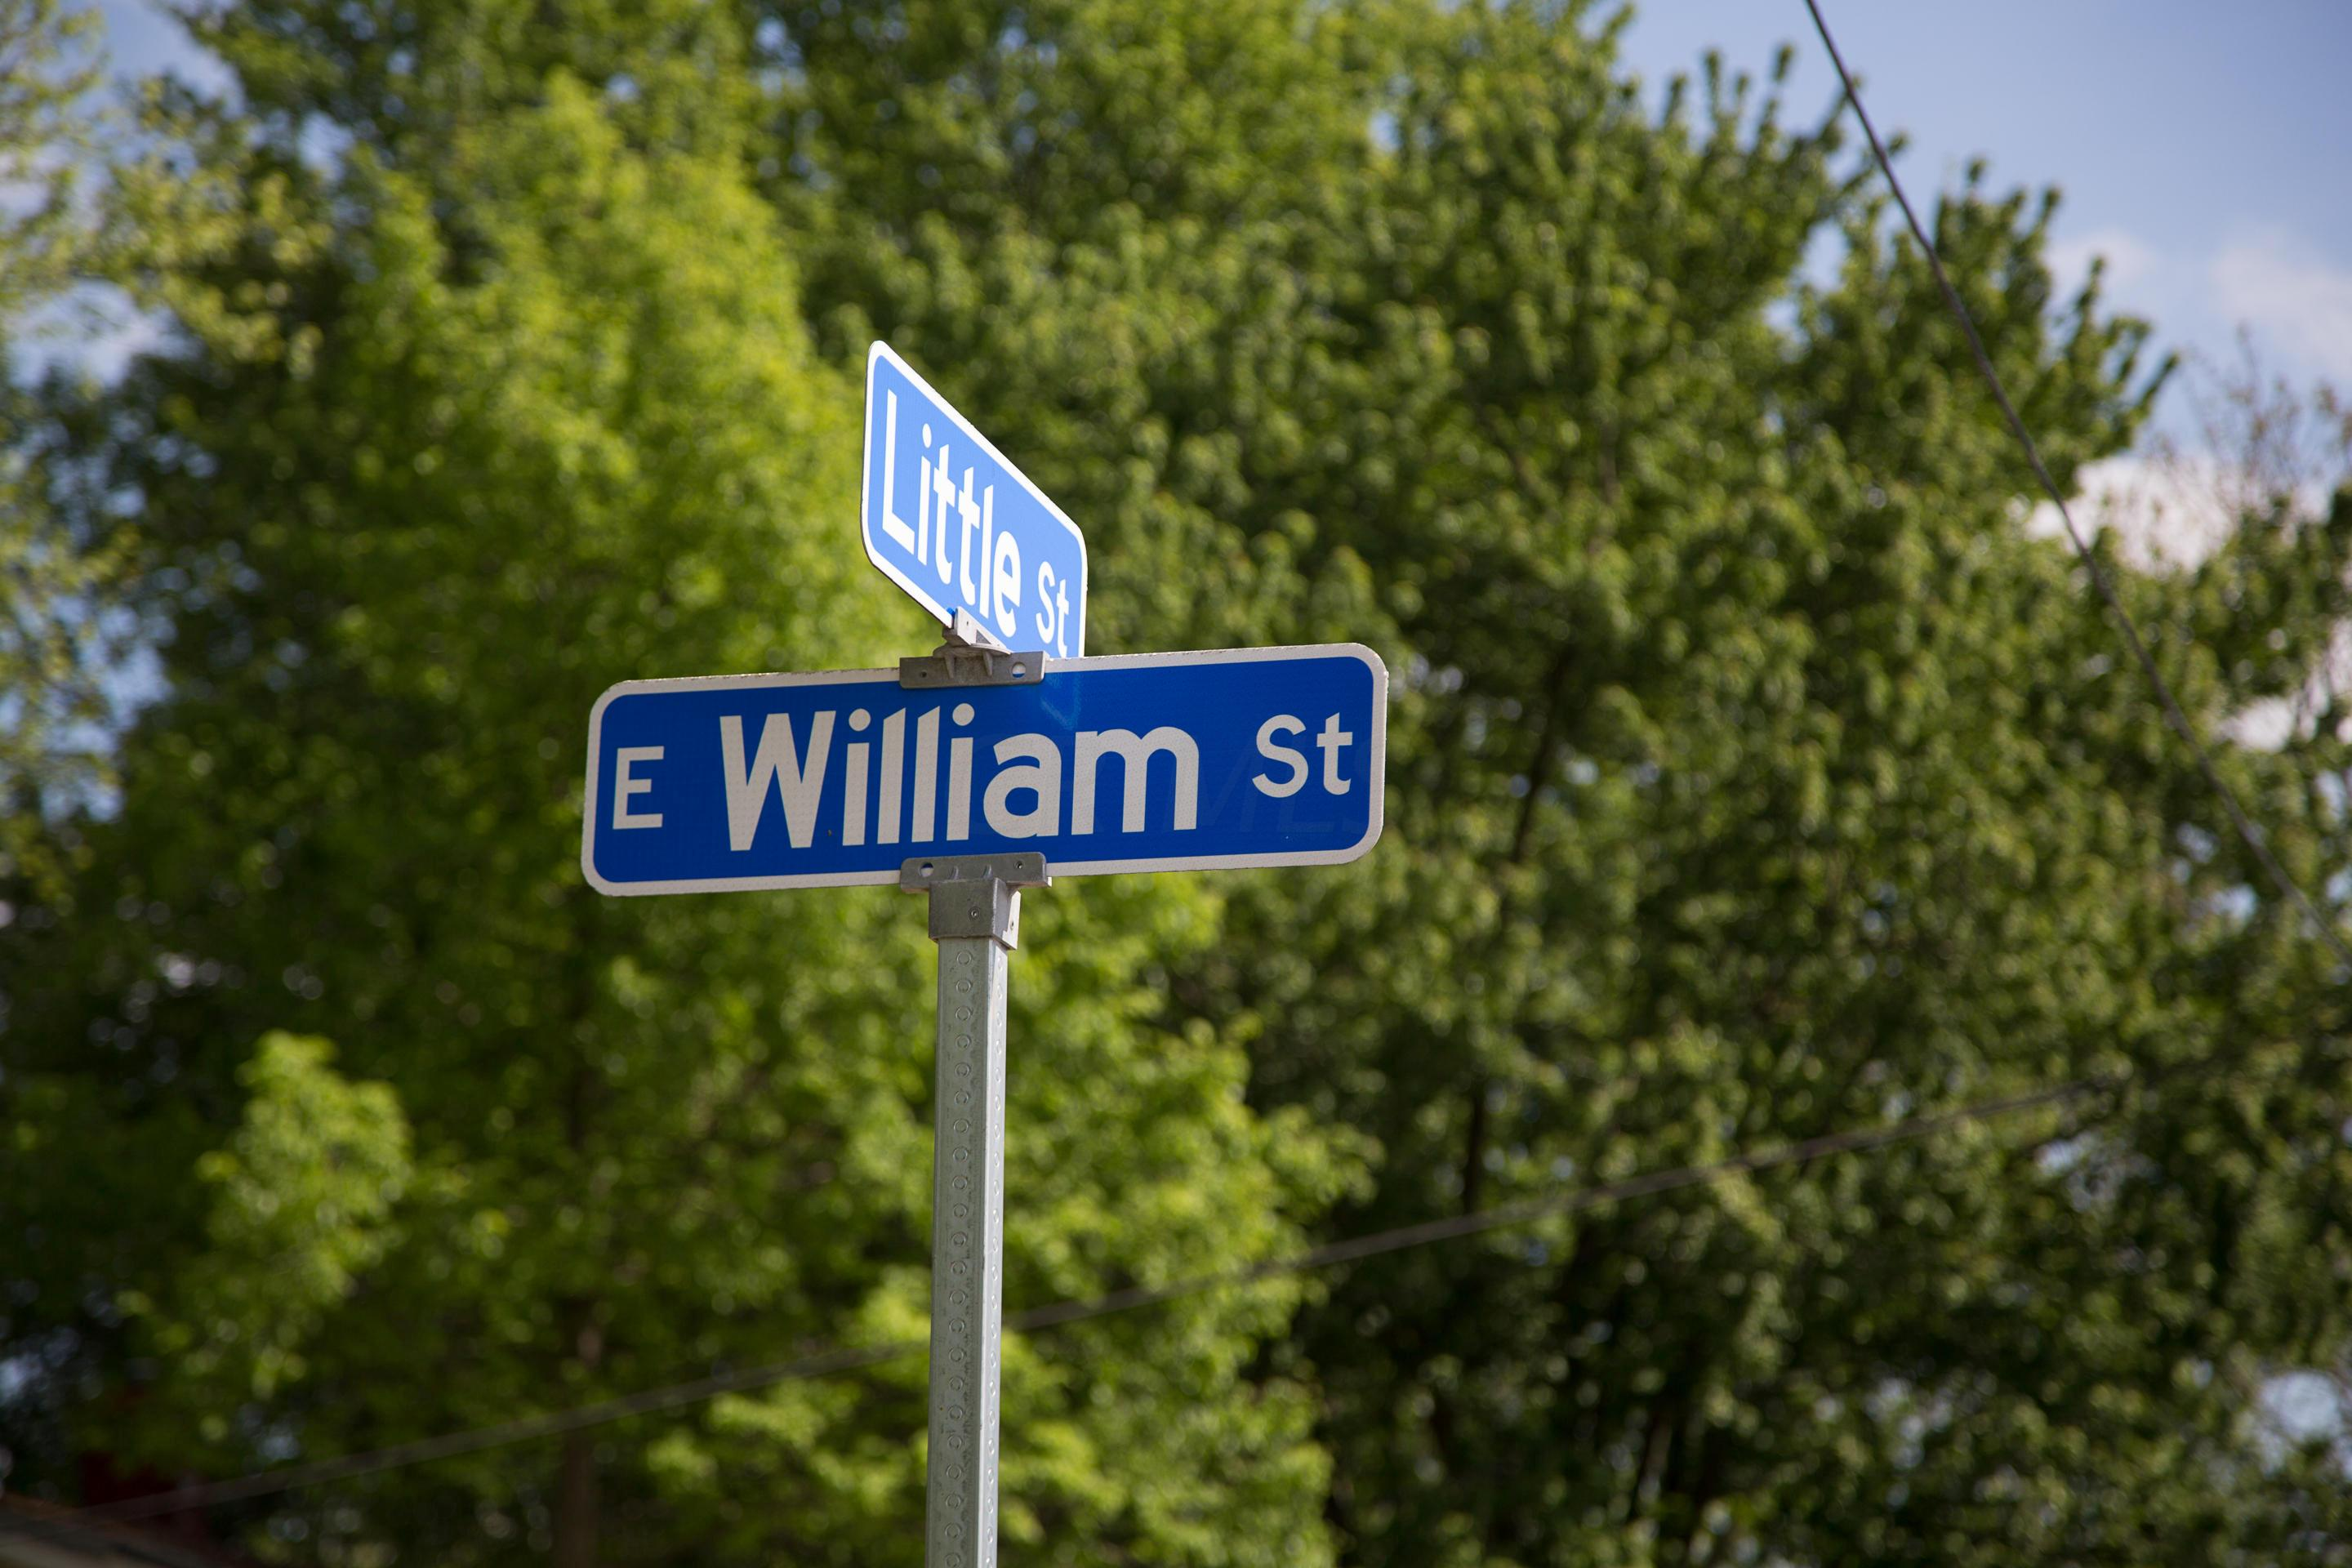 148 WILLIAM Street, Delaware, Ohio 43015, 2 Bedrooms Bedrooms, ,1 BathroomBathrooms,Residential,For Sale,WILLIAM,220016262